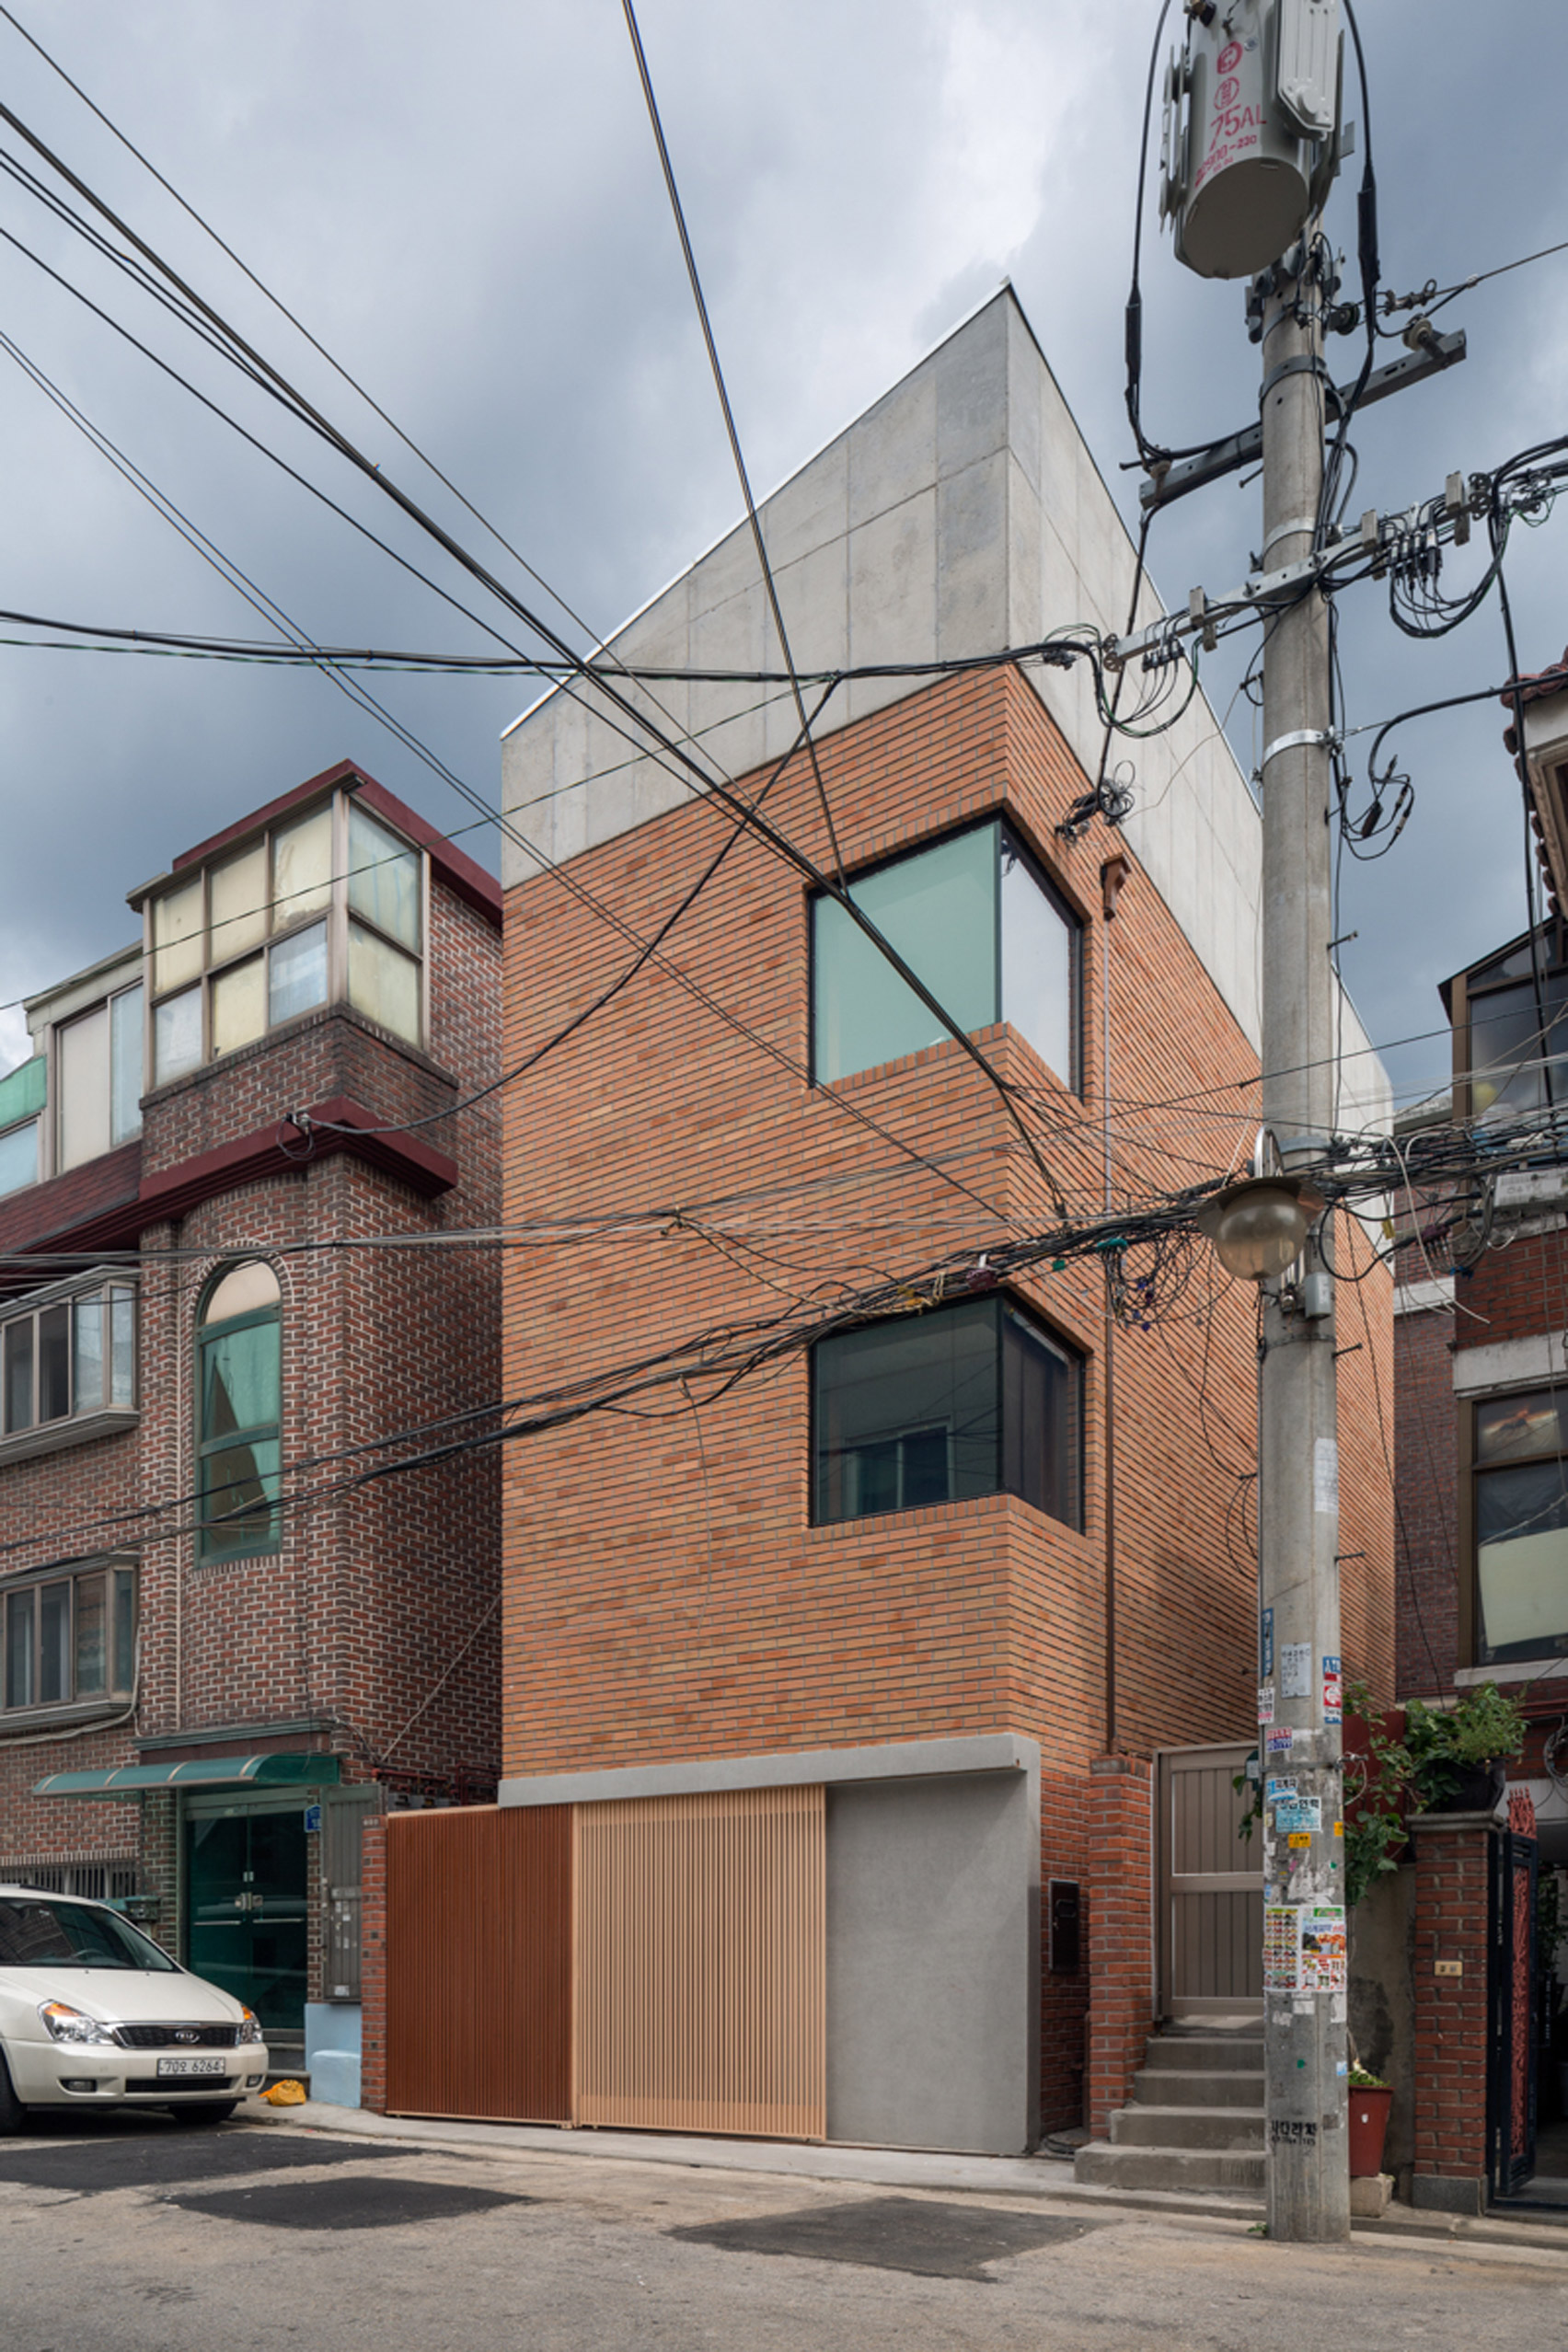 grown-house-fhhh-friends-architecture-residential-seoul-south-korea_dezeen_1704_col_25